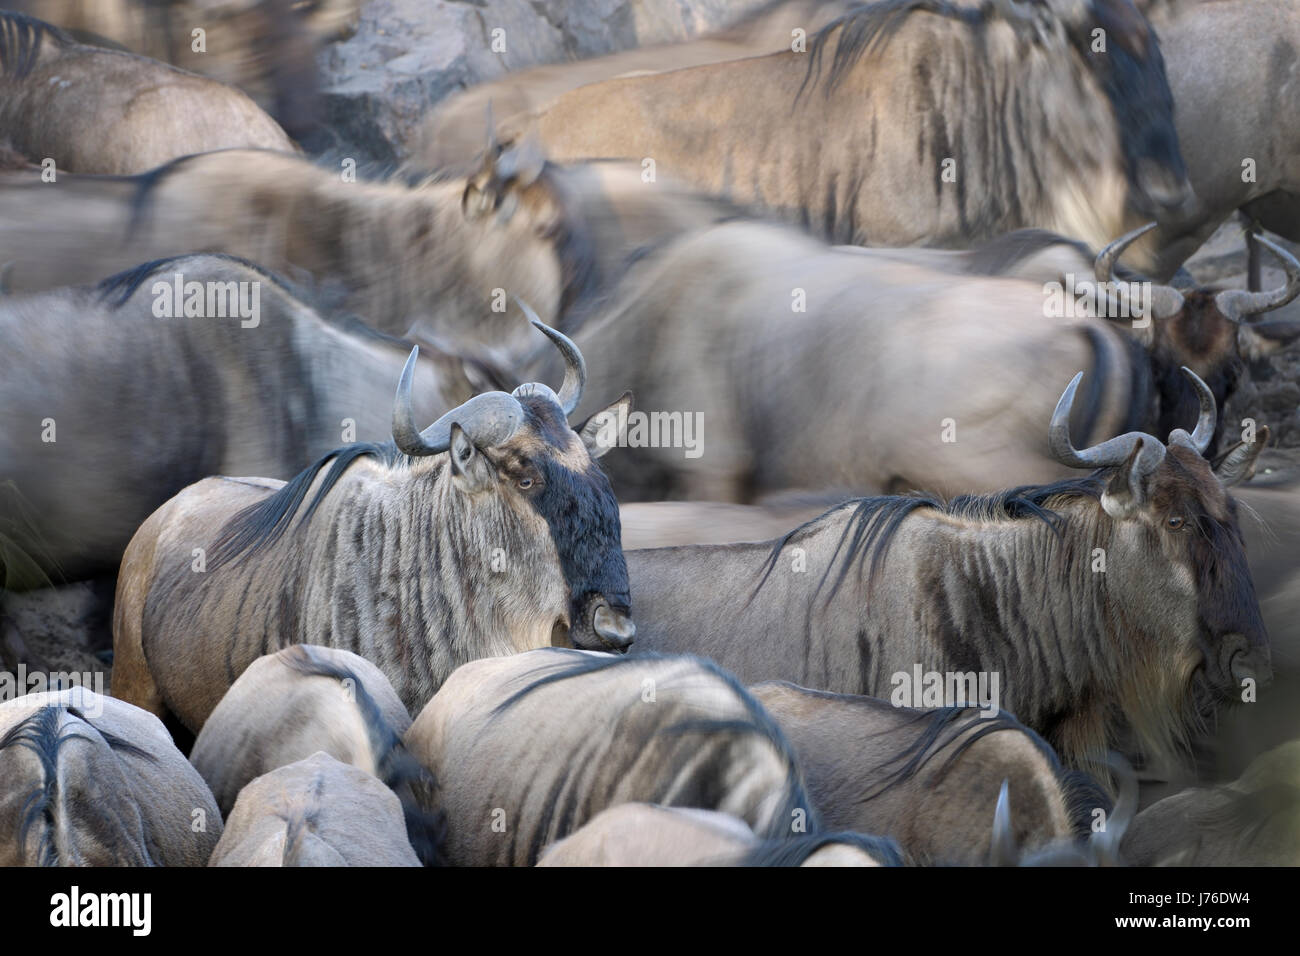 Wildebeest (Connochaetes taurinus), gnu, herd close up with partly motion blur, Serengeti national park, Tanzania - Stock Image